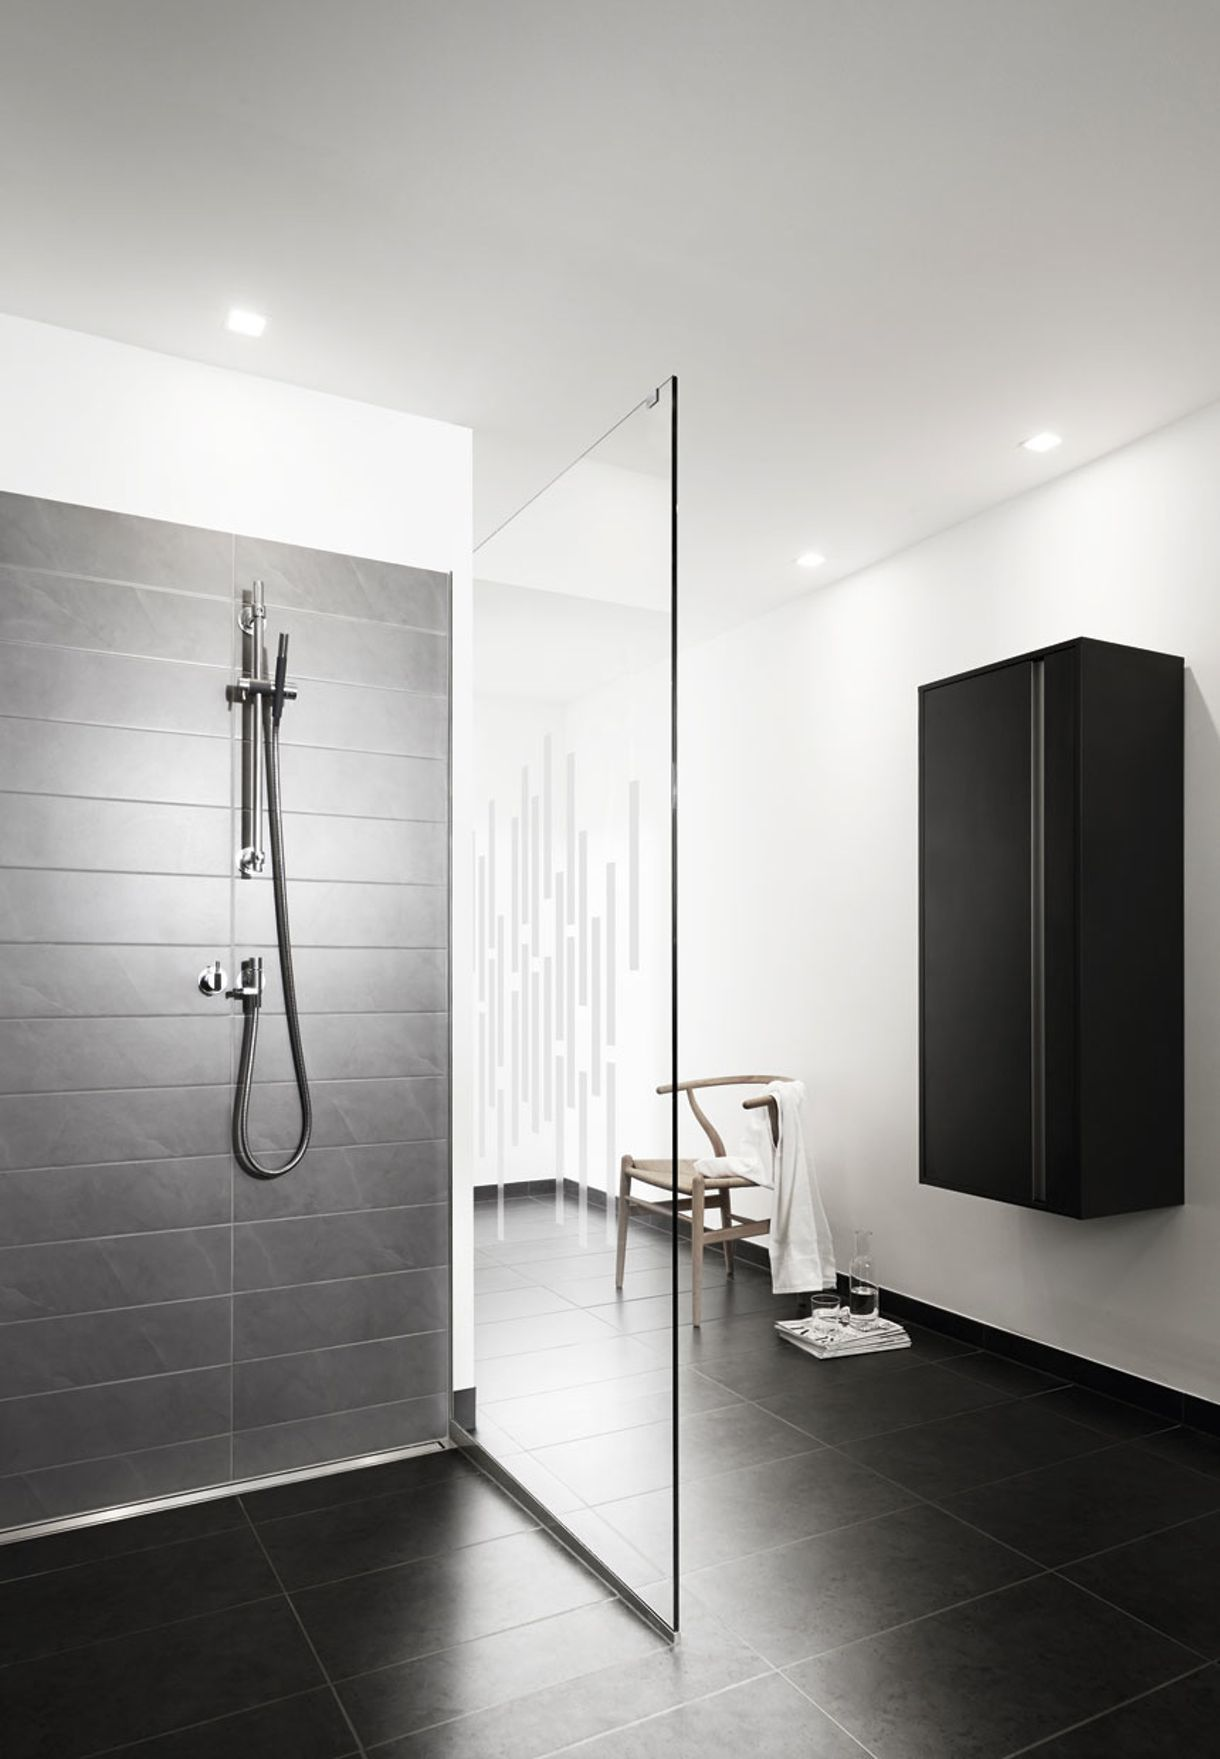 Bruseniche - Minimal Bathroom Style - Shower - Modern Minimalist